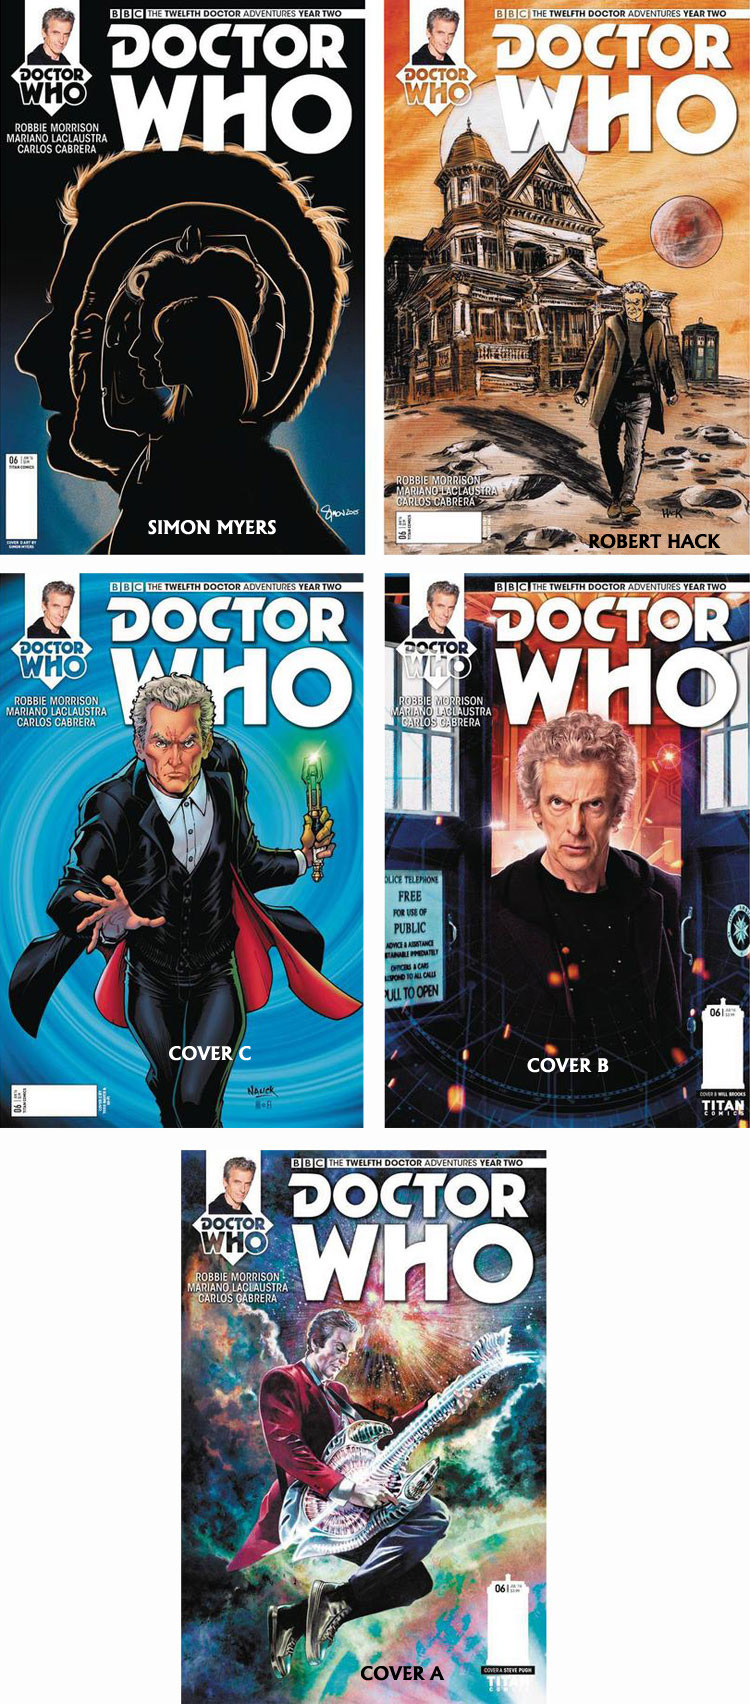 Doctor Who Comic: Twelfth Doctor, Year 2, Issue 06